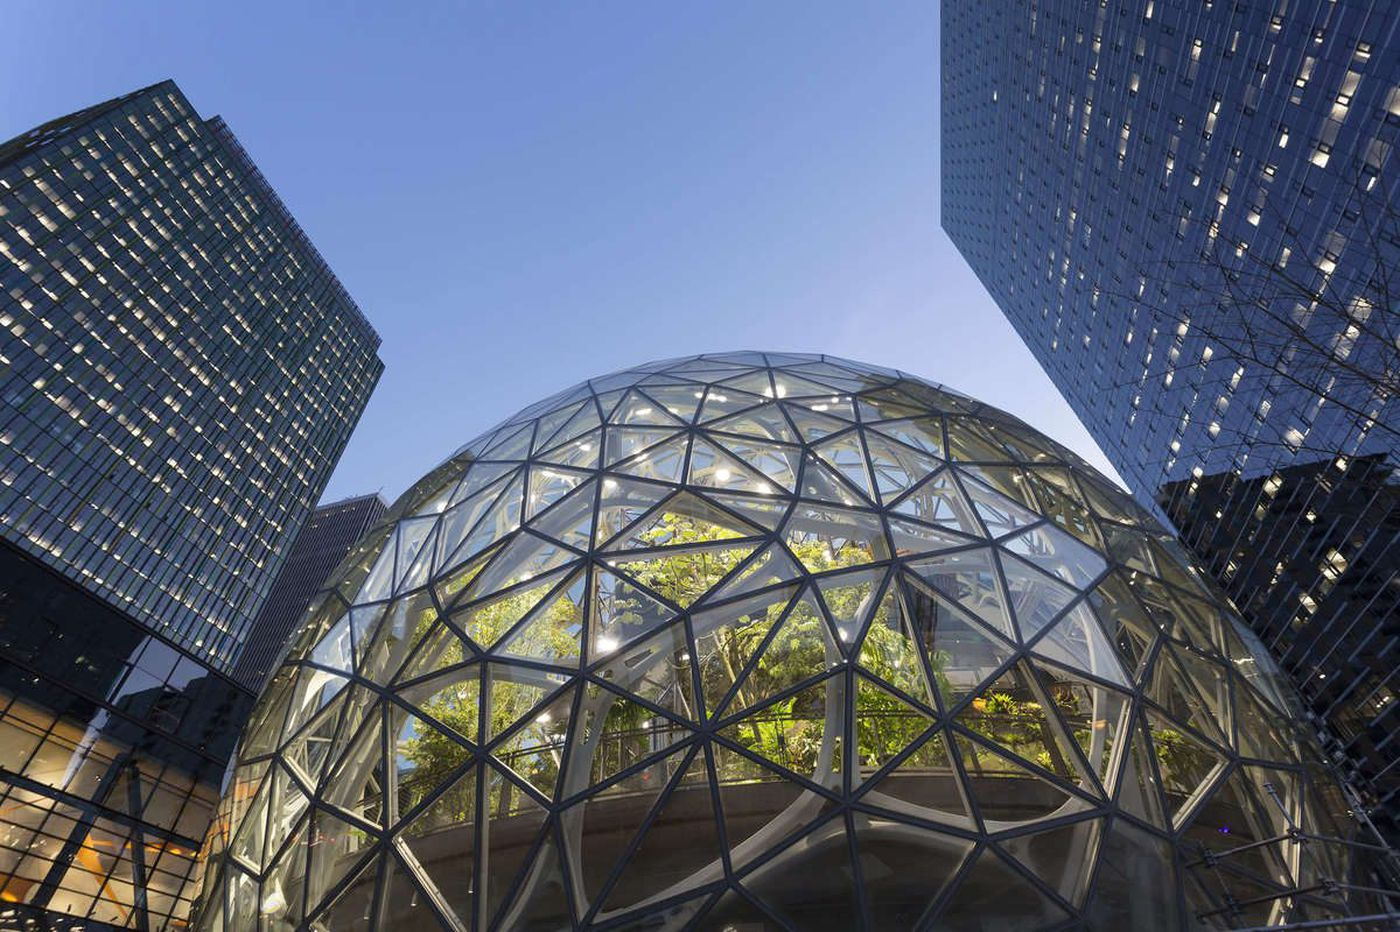 How good were predictions on Amazon's top cities for HQ2?